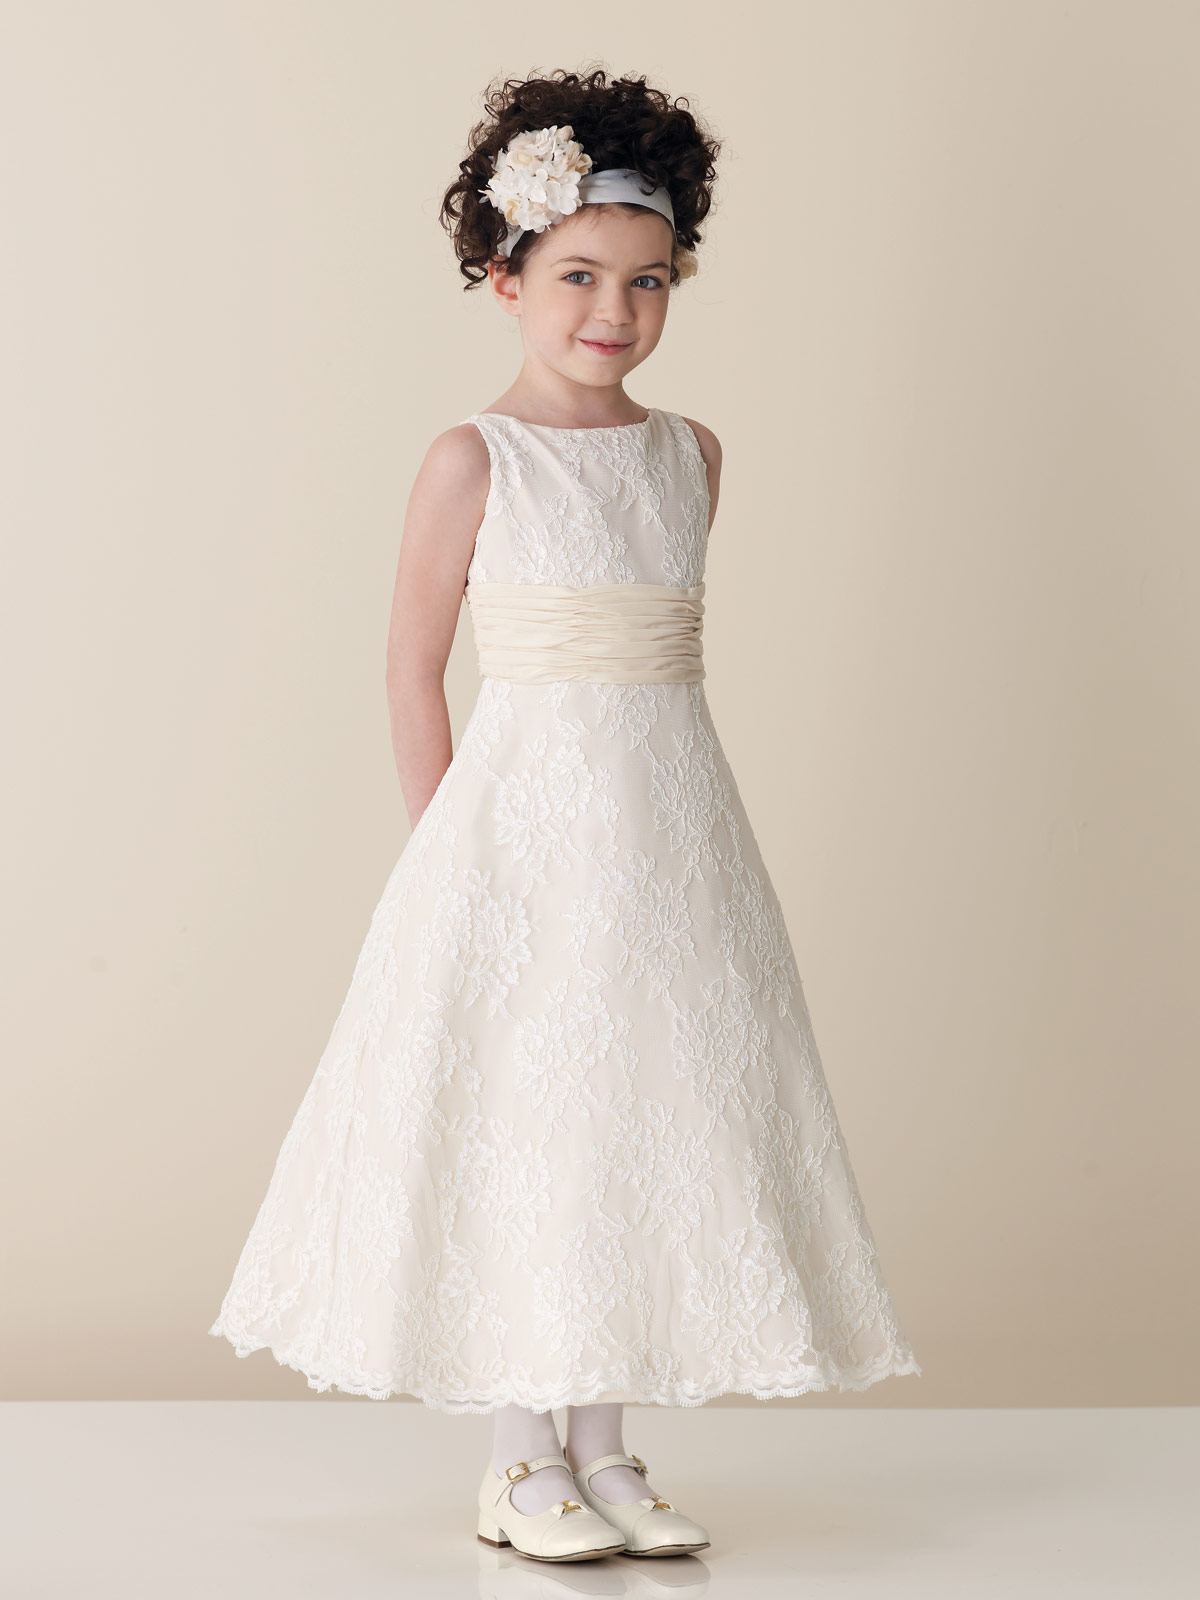 free wedding kids wedding dresses With kids wedding dress